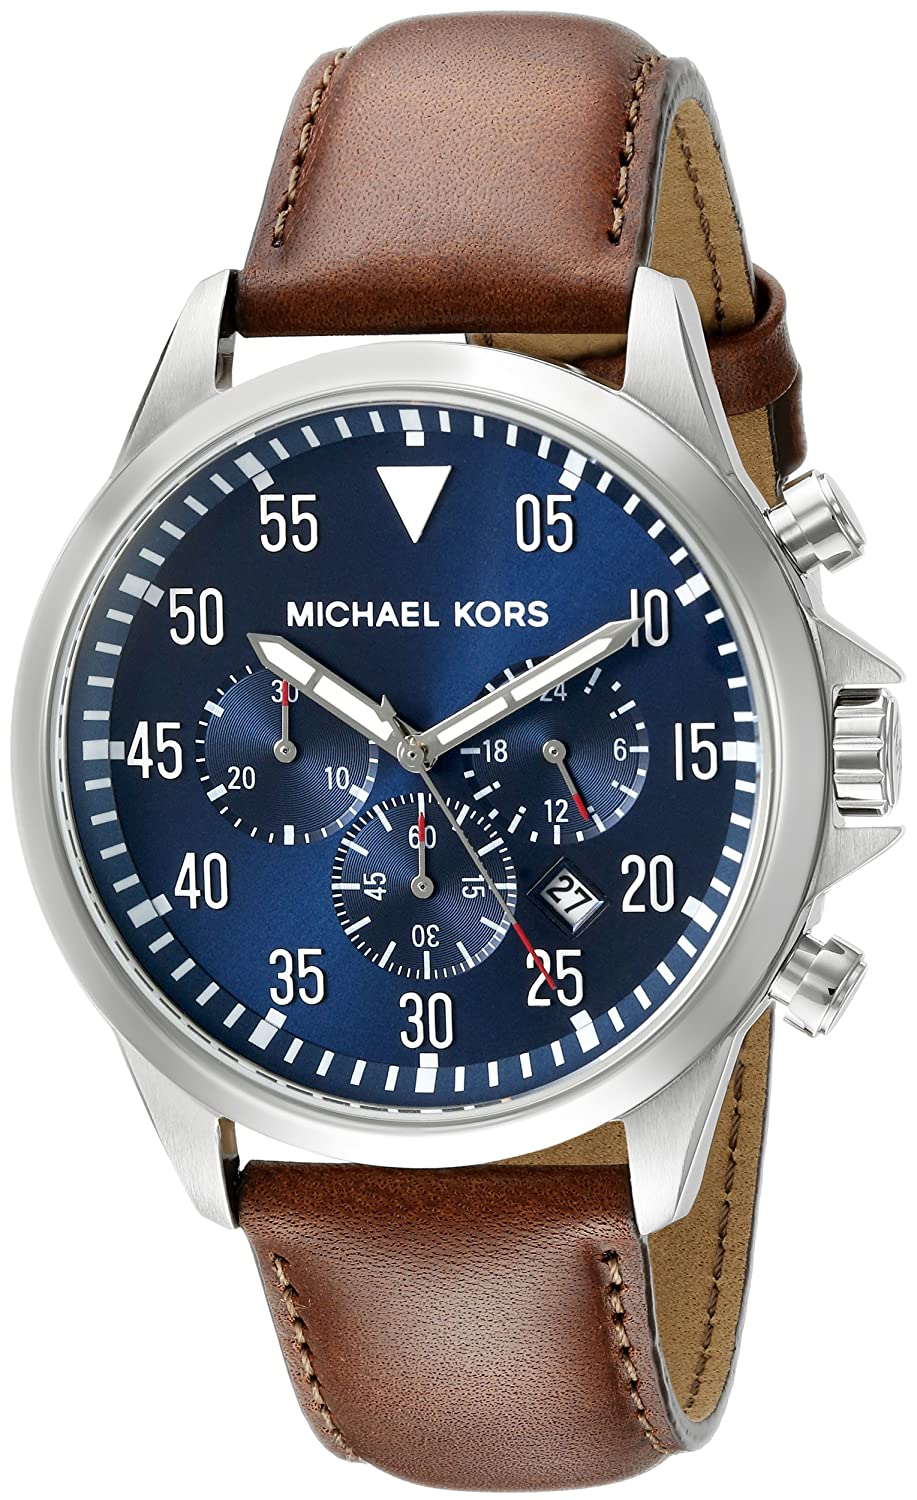 michael kors watches outlet store  michael kors watches